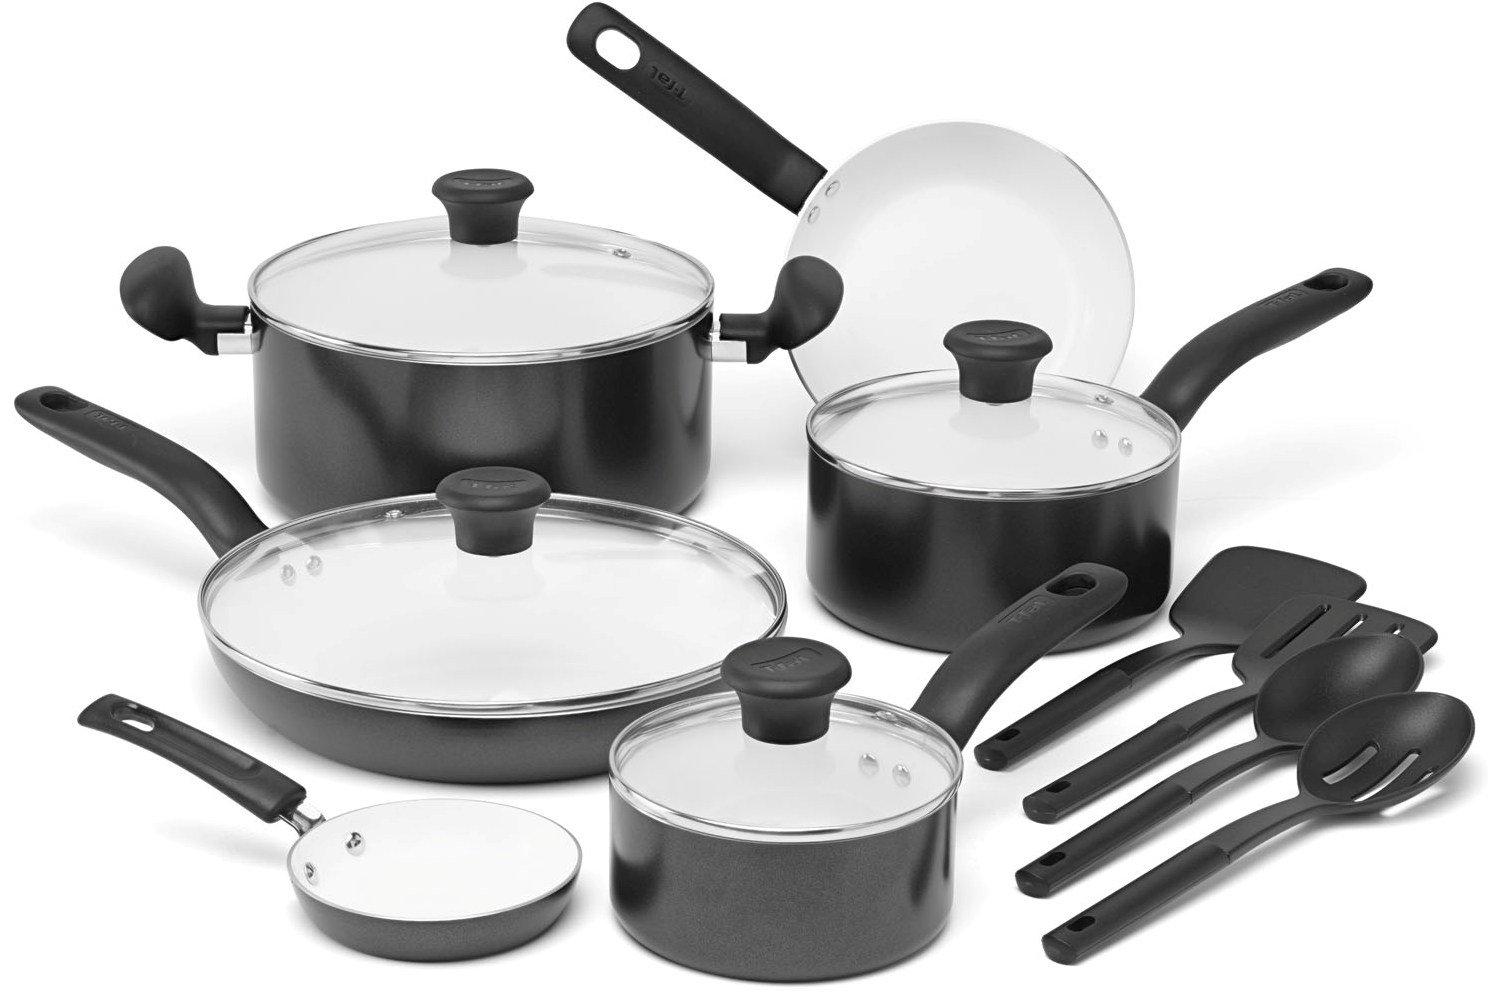 T-fal C921SE Initiatives Nonstick Ceramic Coating PTFE PFOA and Cadmium Free Scratch Resistant Dishwasher Safe Oven Safe Cookware Set, 14-Piece, Black